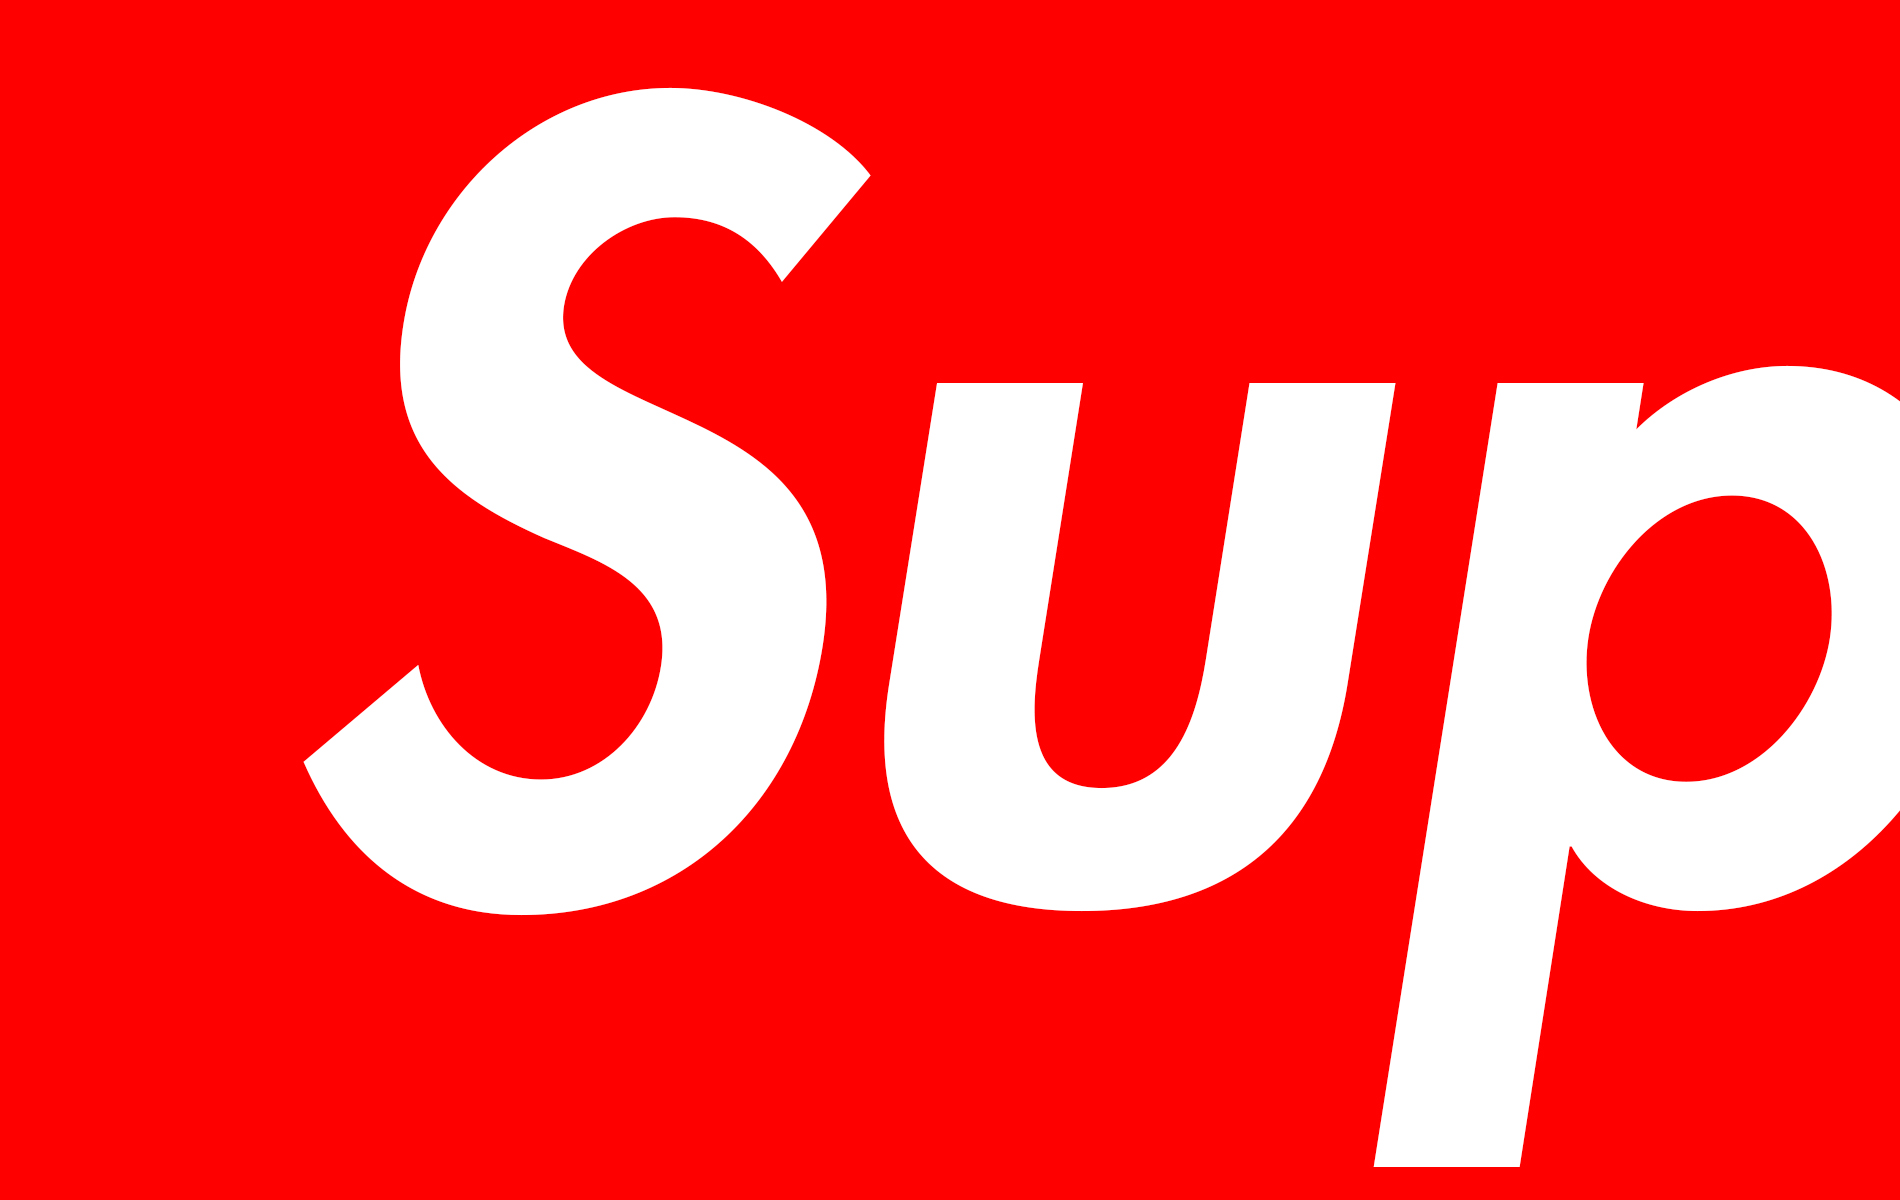 Supreme HD Wallpapers